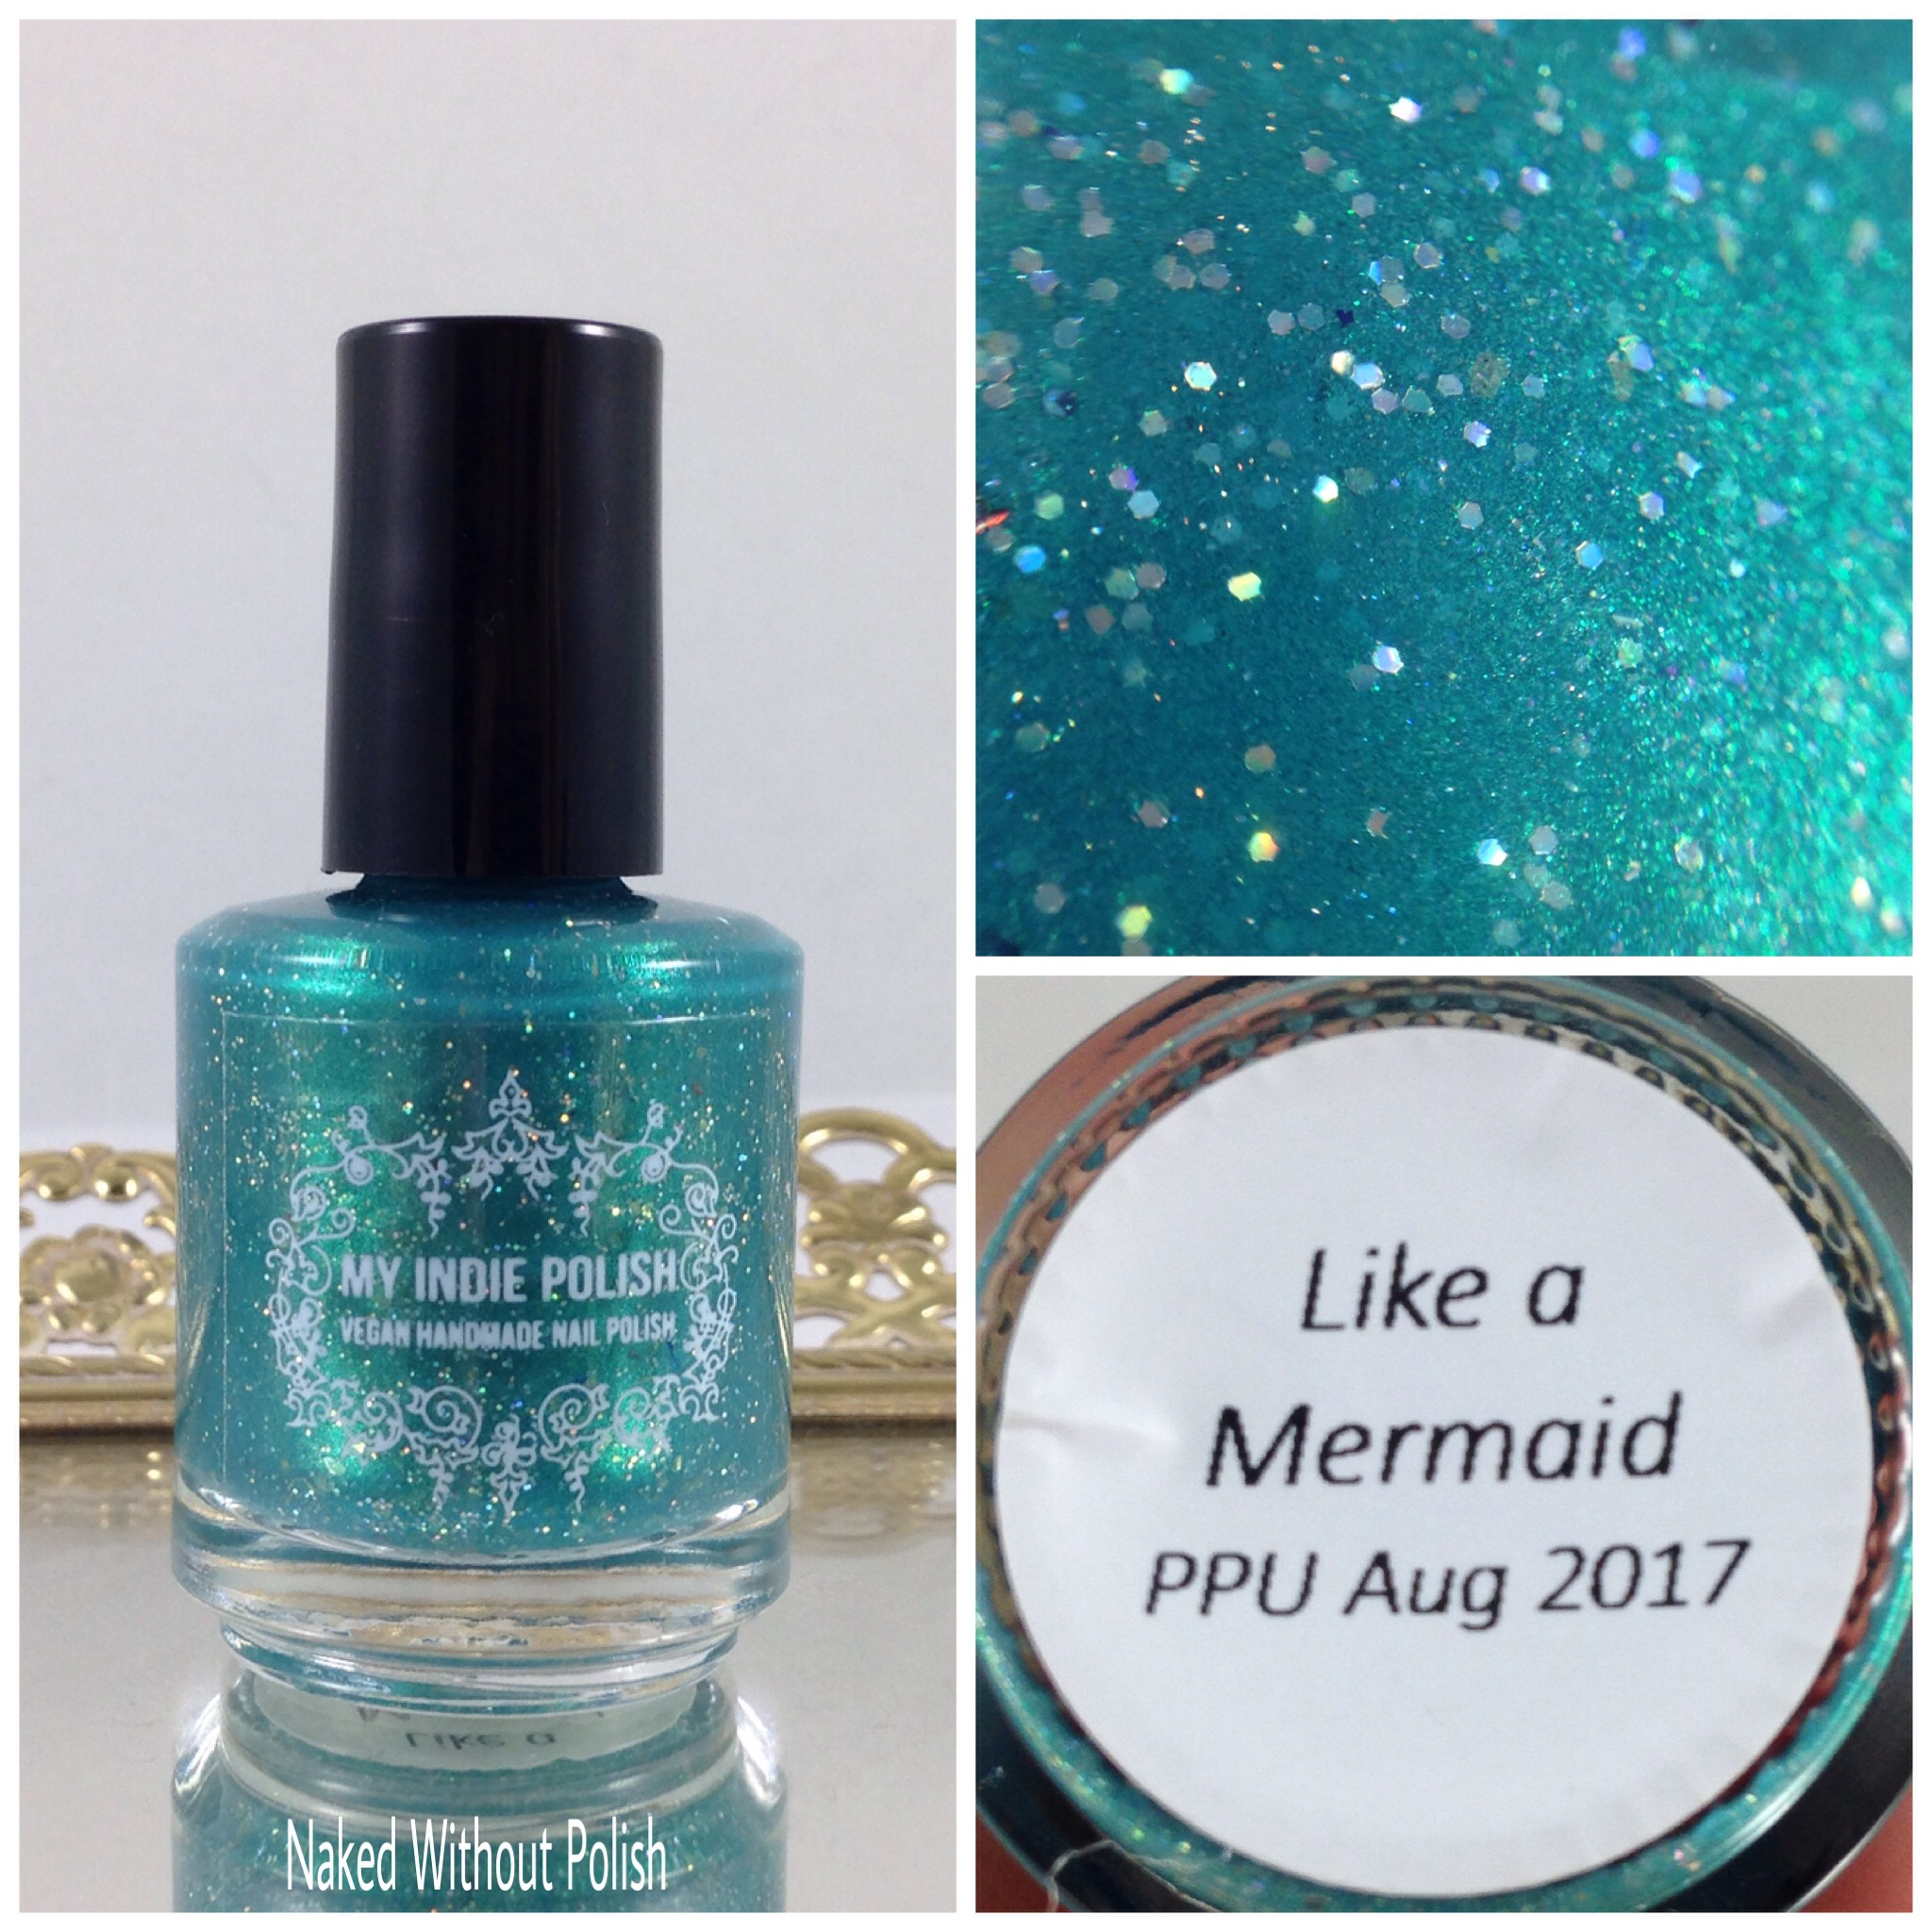 Polish-Pickup-My-Indie-Polish-Like-a-Mermaid-1